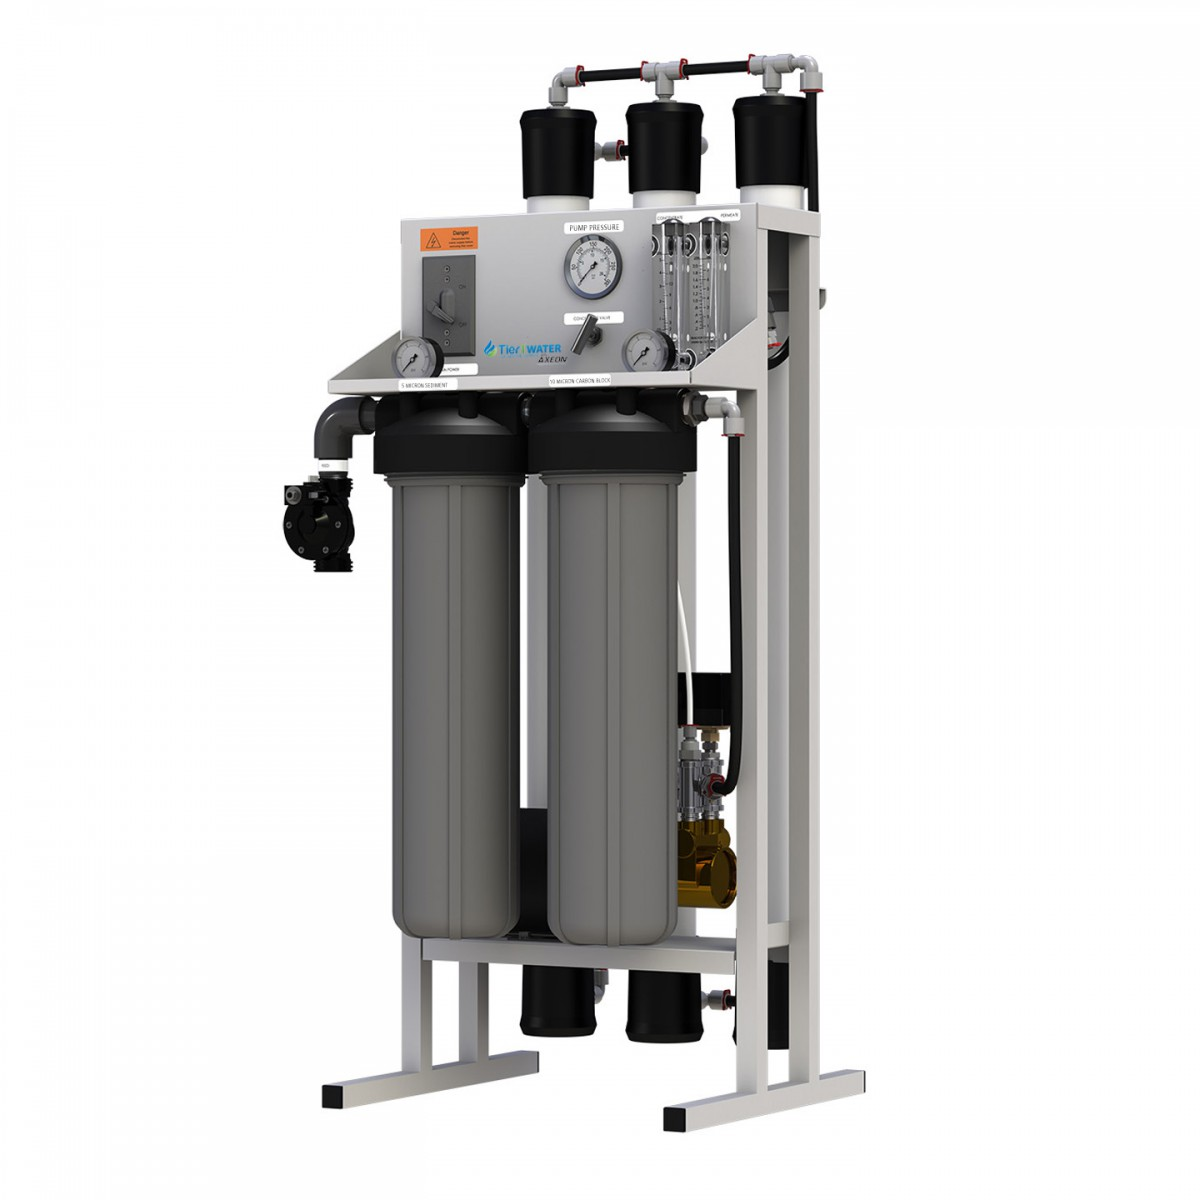 Wh Ro 2000 Whole Home Reverse Osmosis System By Tier1